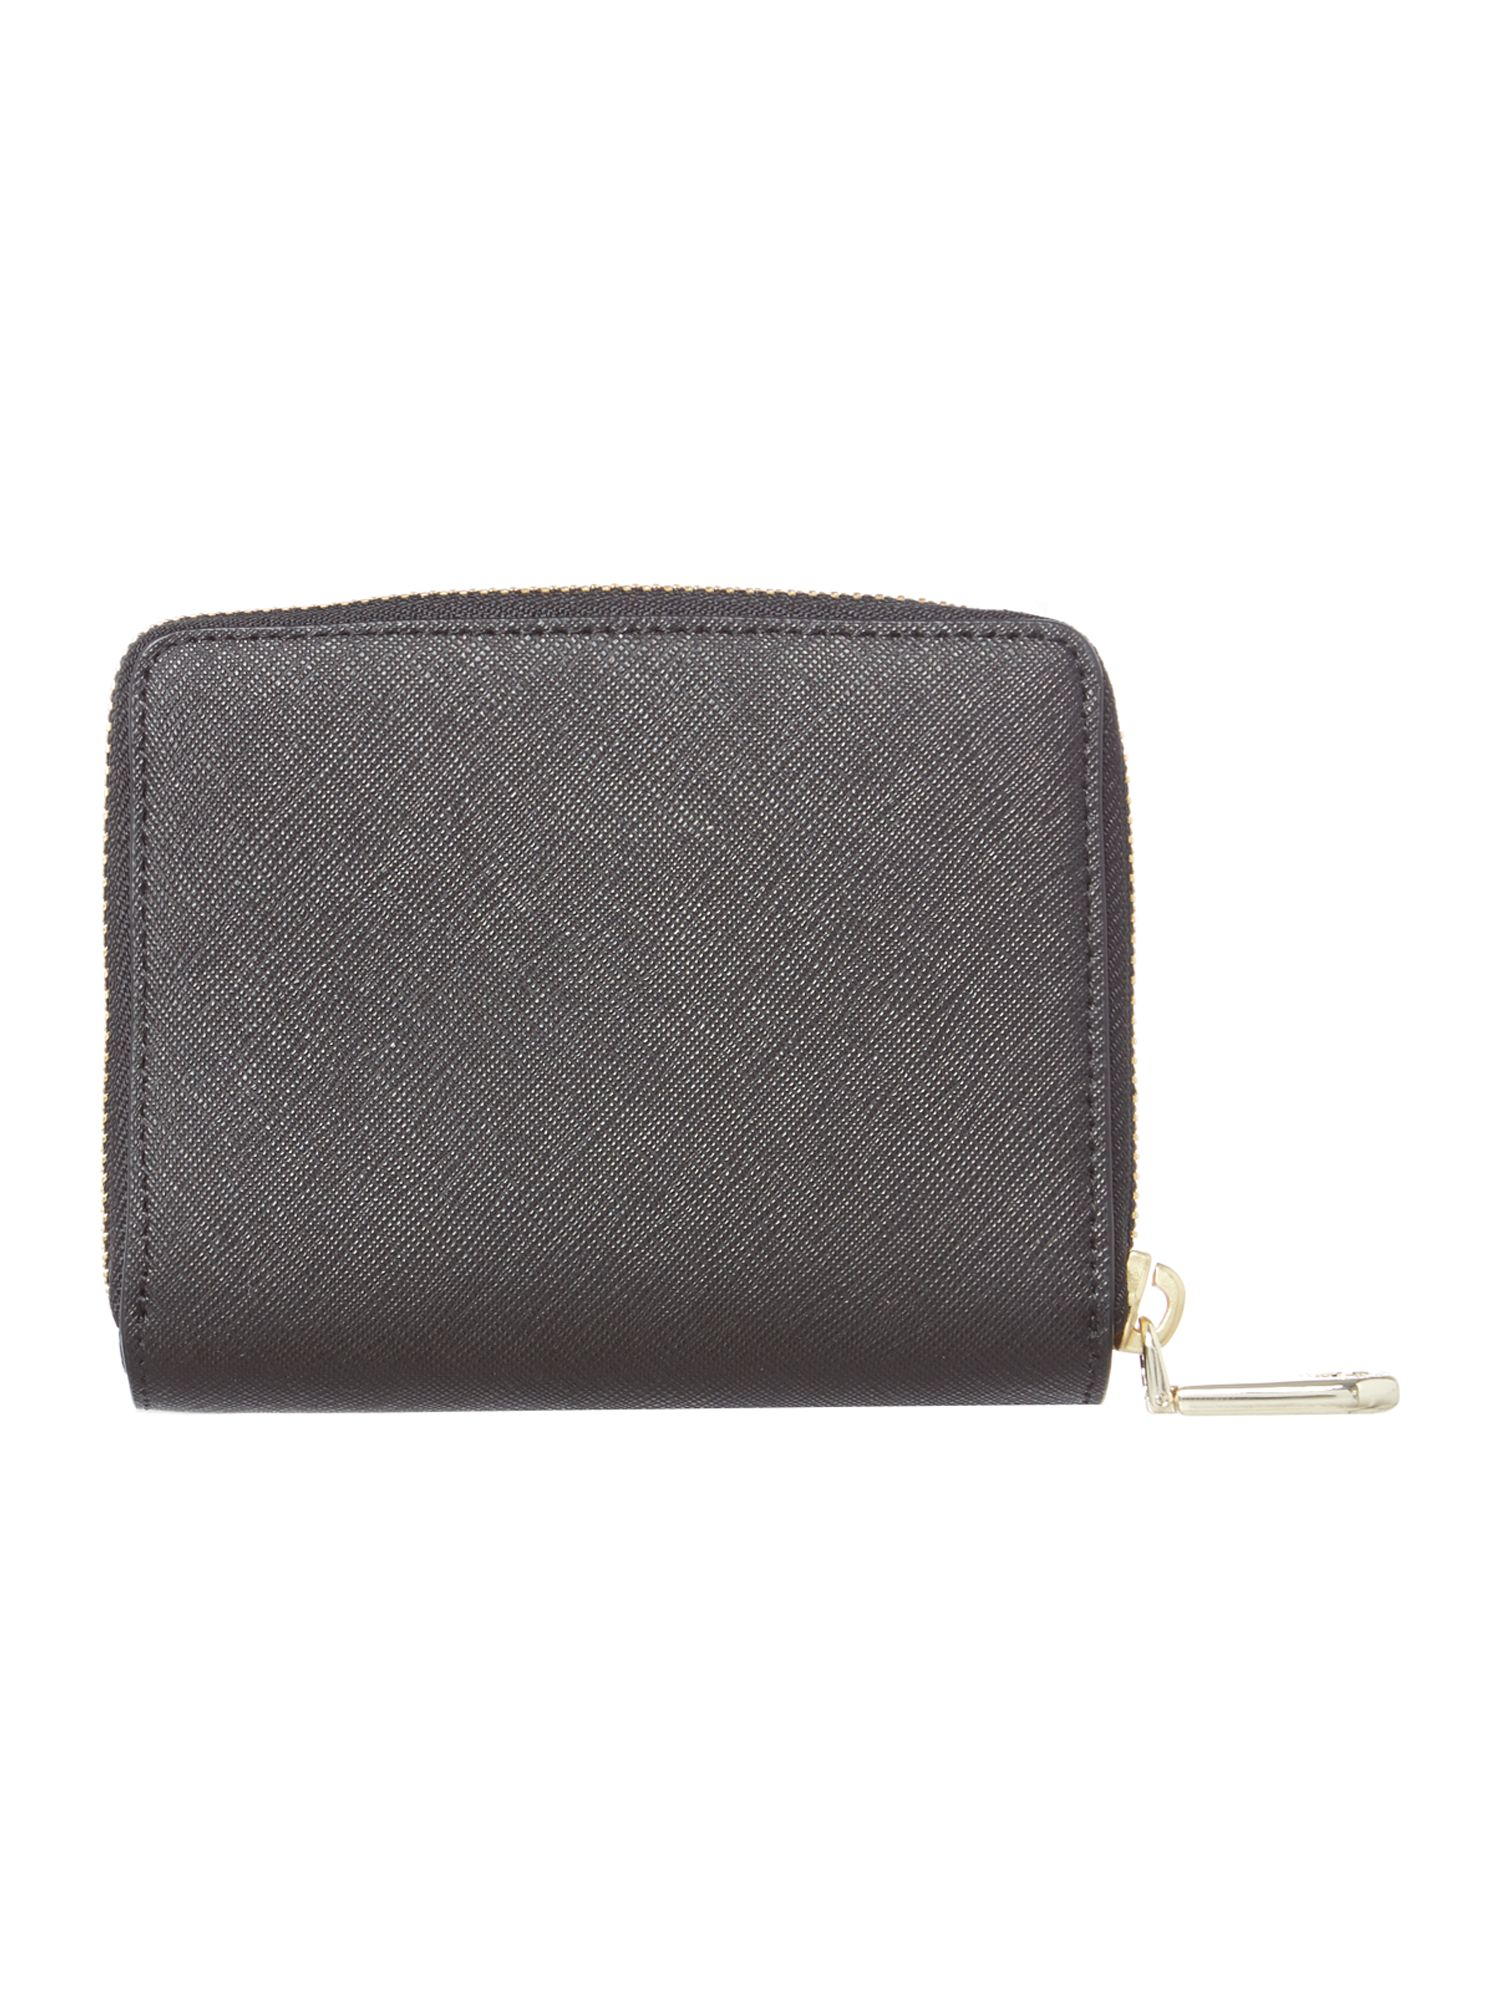 Bryant park black small zip around purse